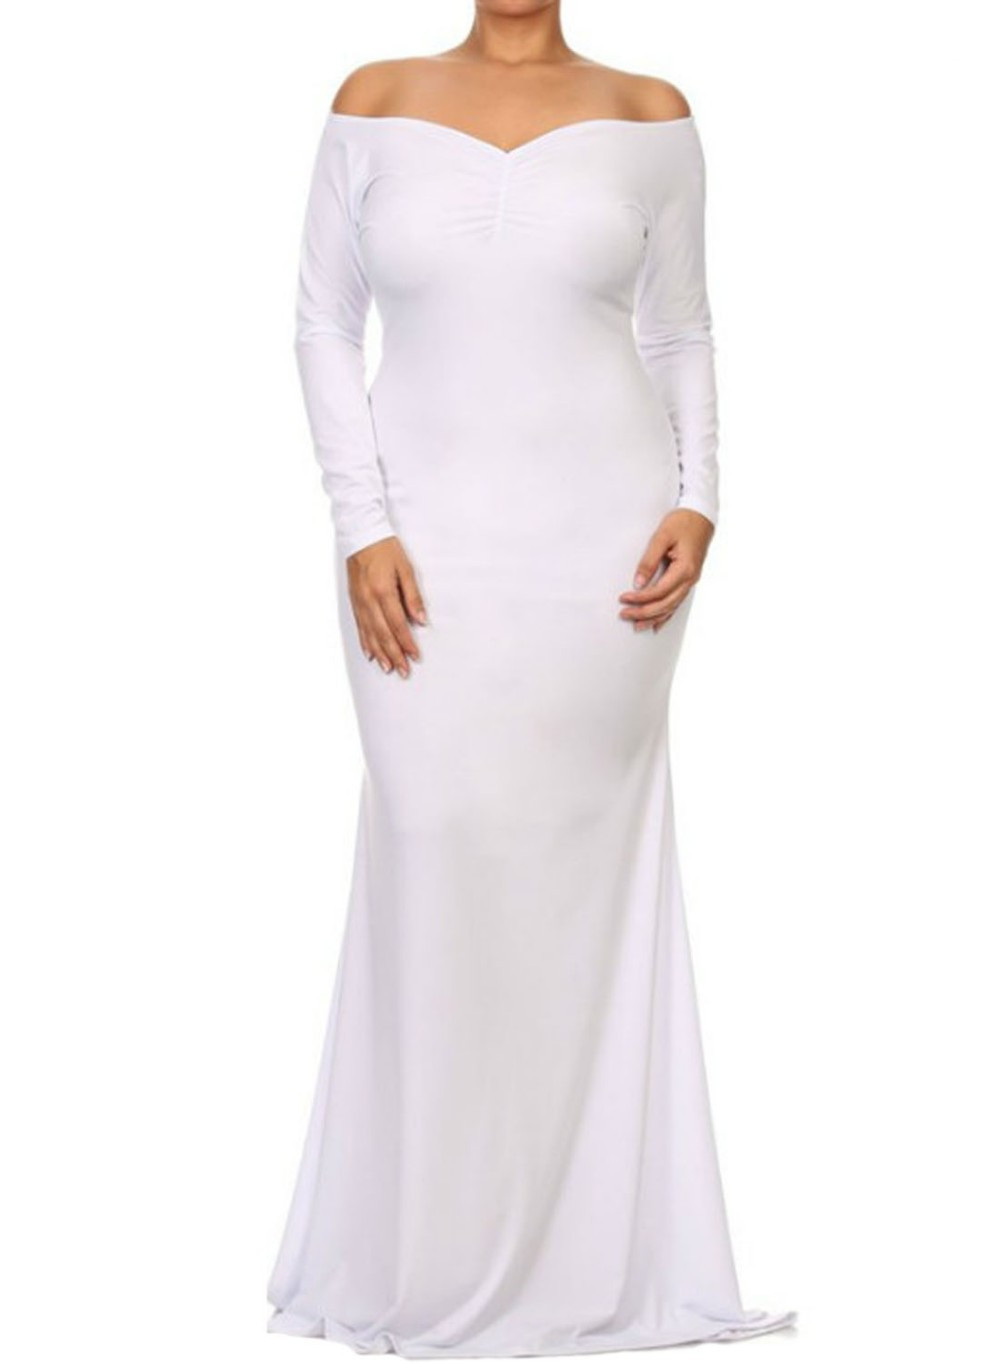 Plus Sized Maxi dresses with V neck at Bling Brides Bouquet - Online Bridal  image 3